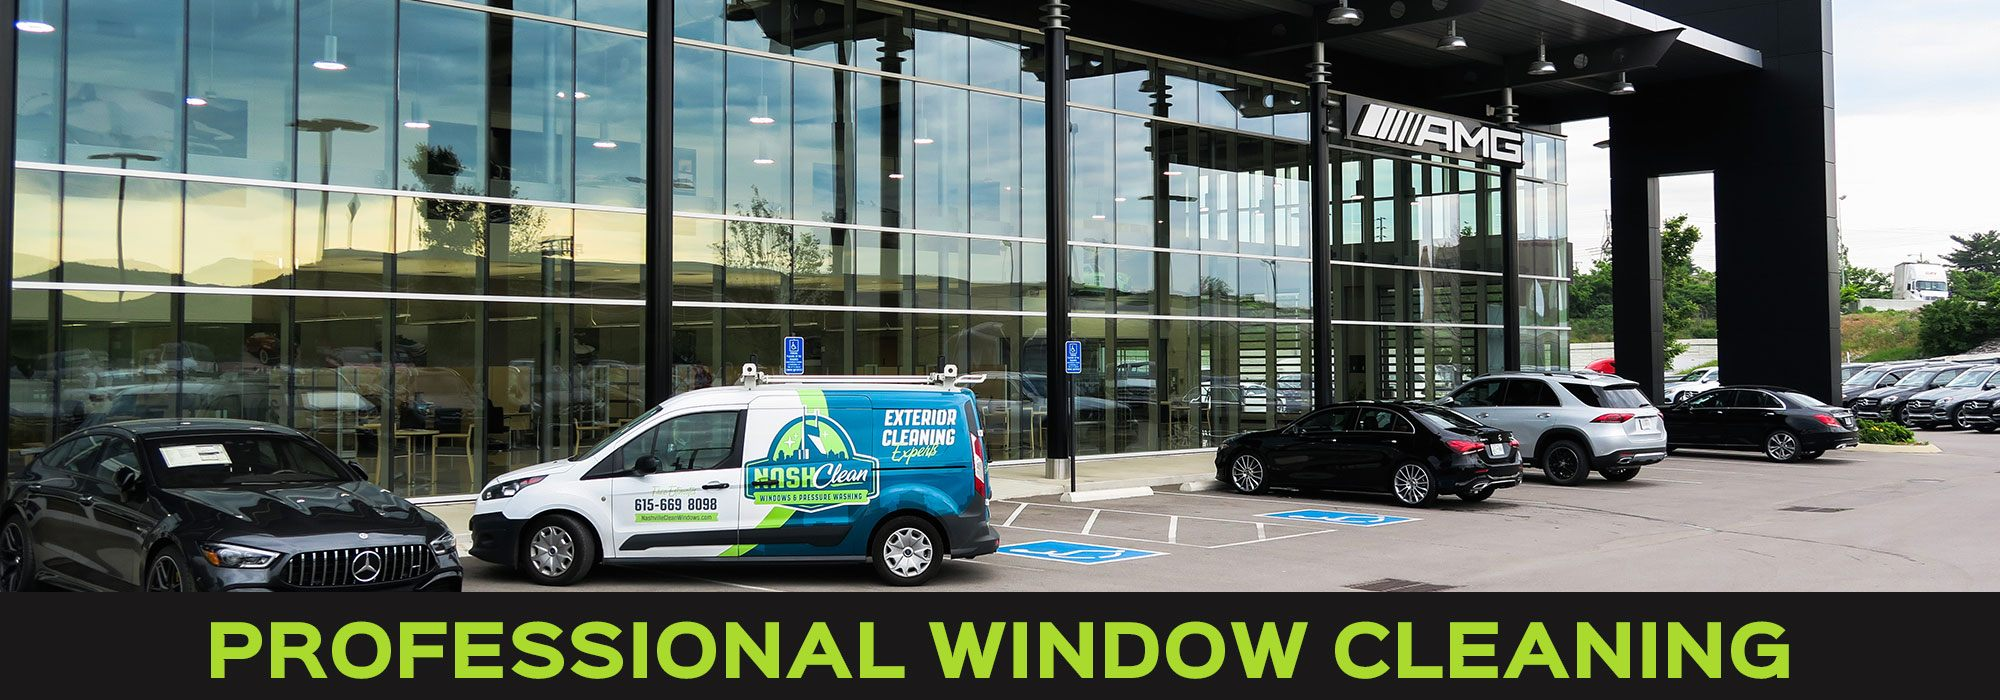 nashville window cleaning